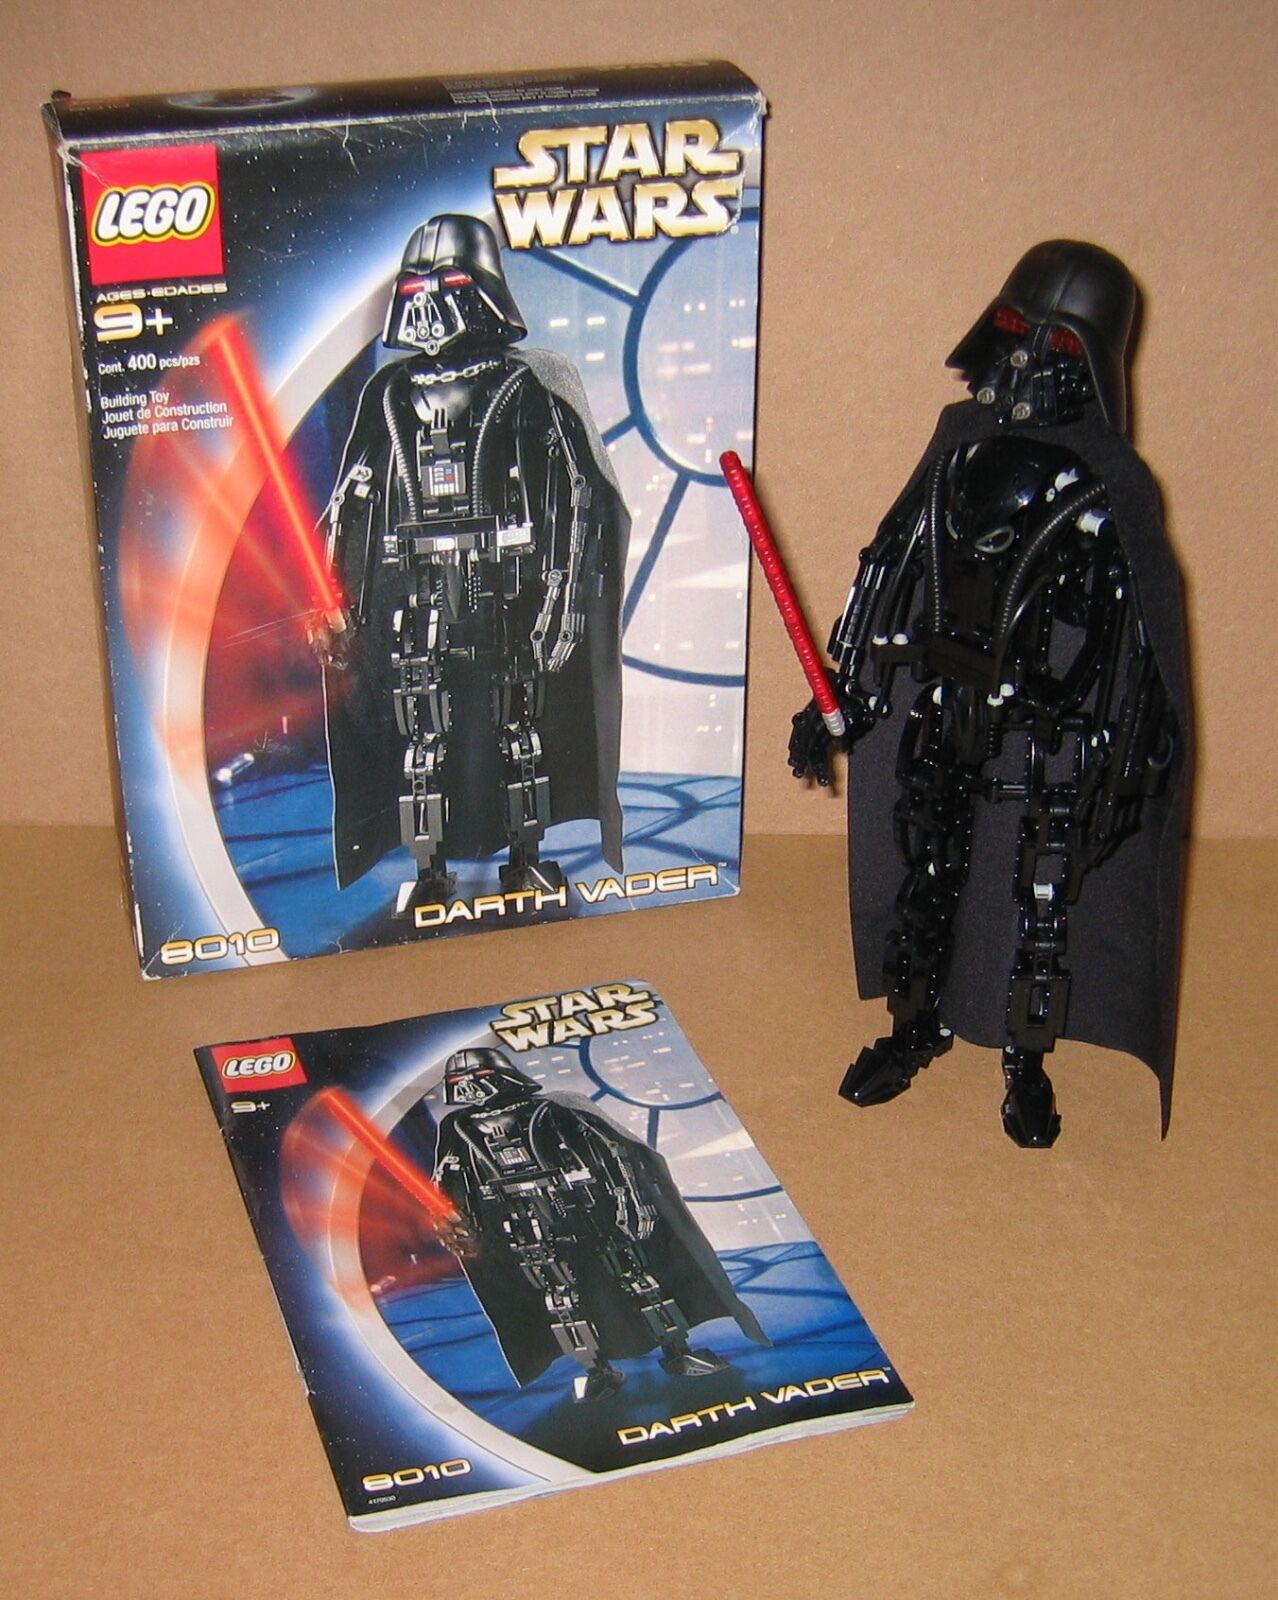 8010 LEGO Star Wars Darth Vader 100% Complete w box & Instructions EX COND 2002